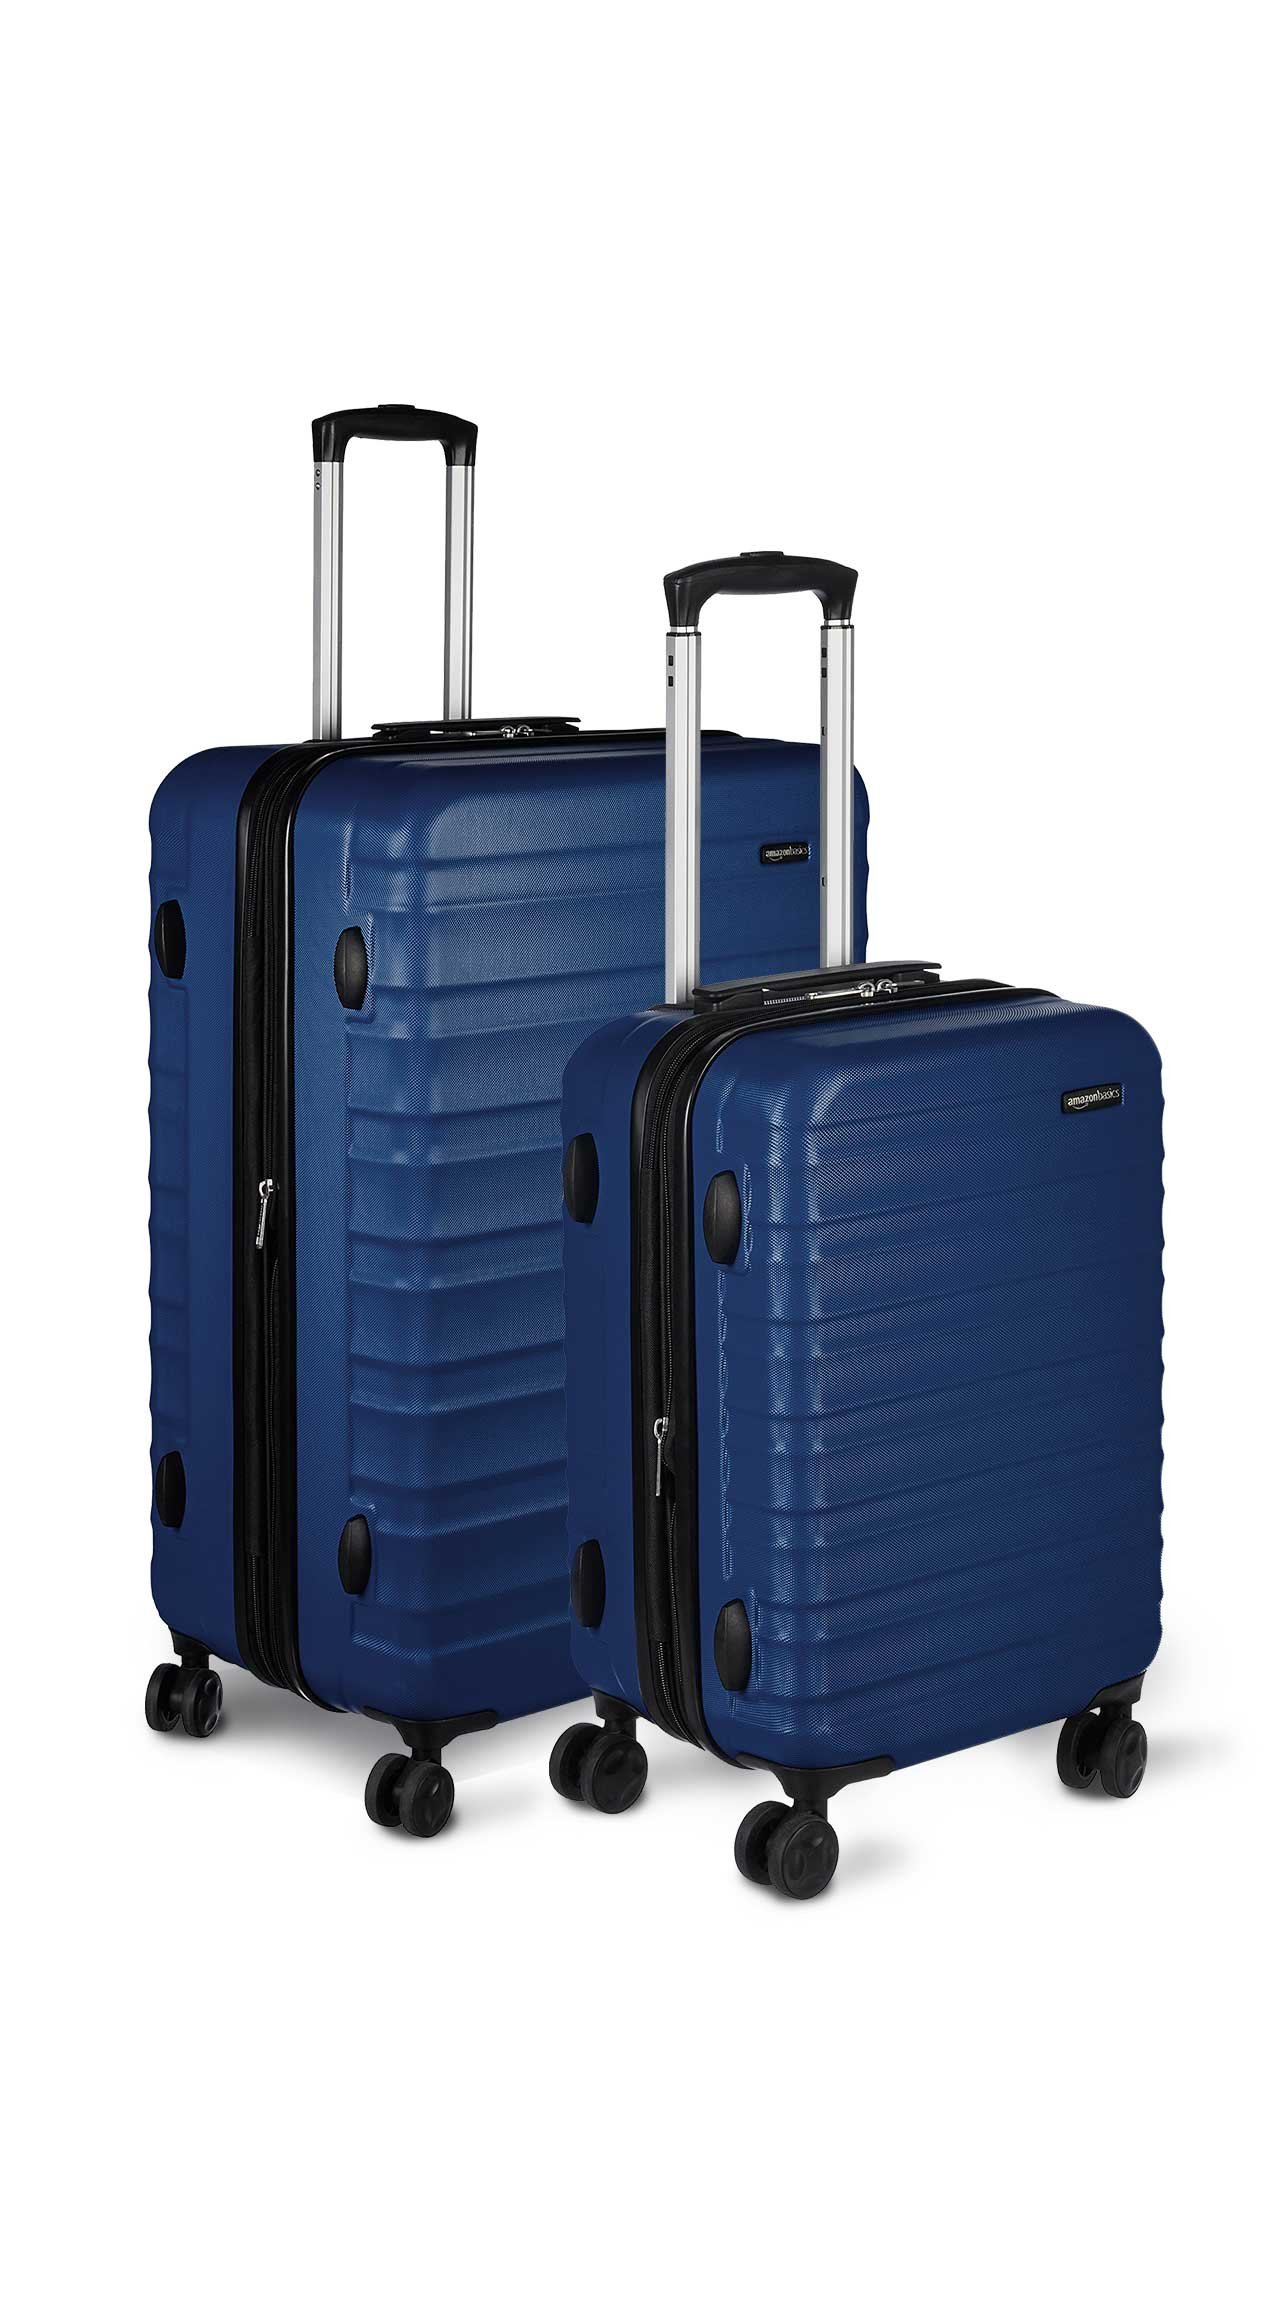 AmazonBasics Hardside Spinner Luggage - 2 Piece Set (20'', 28''), Navy Blue by AmazonBasics